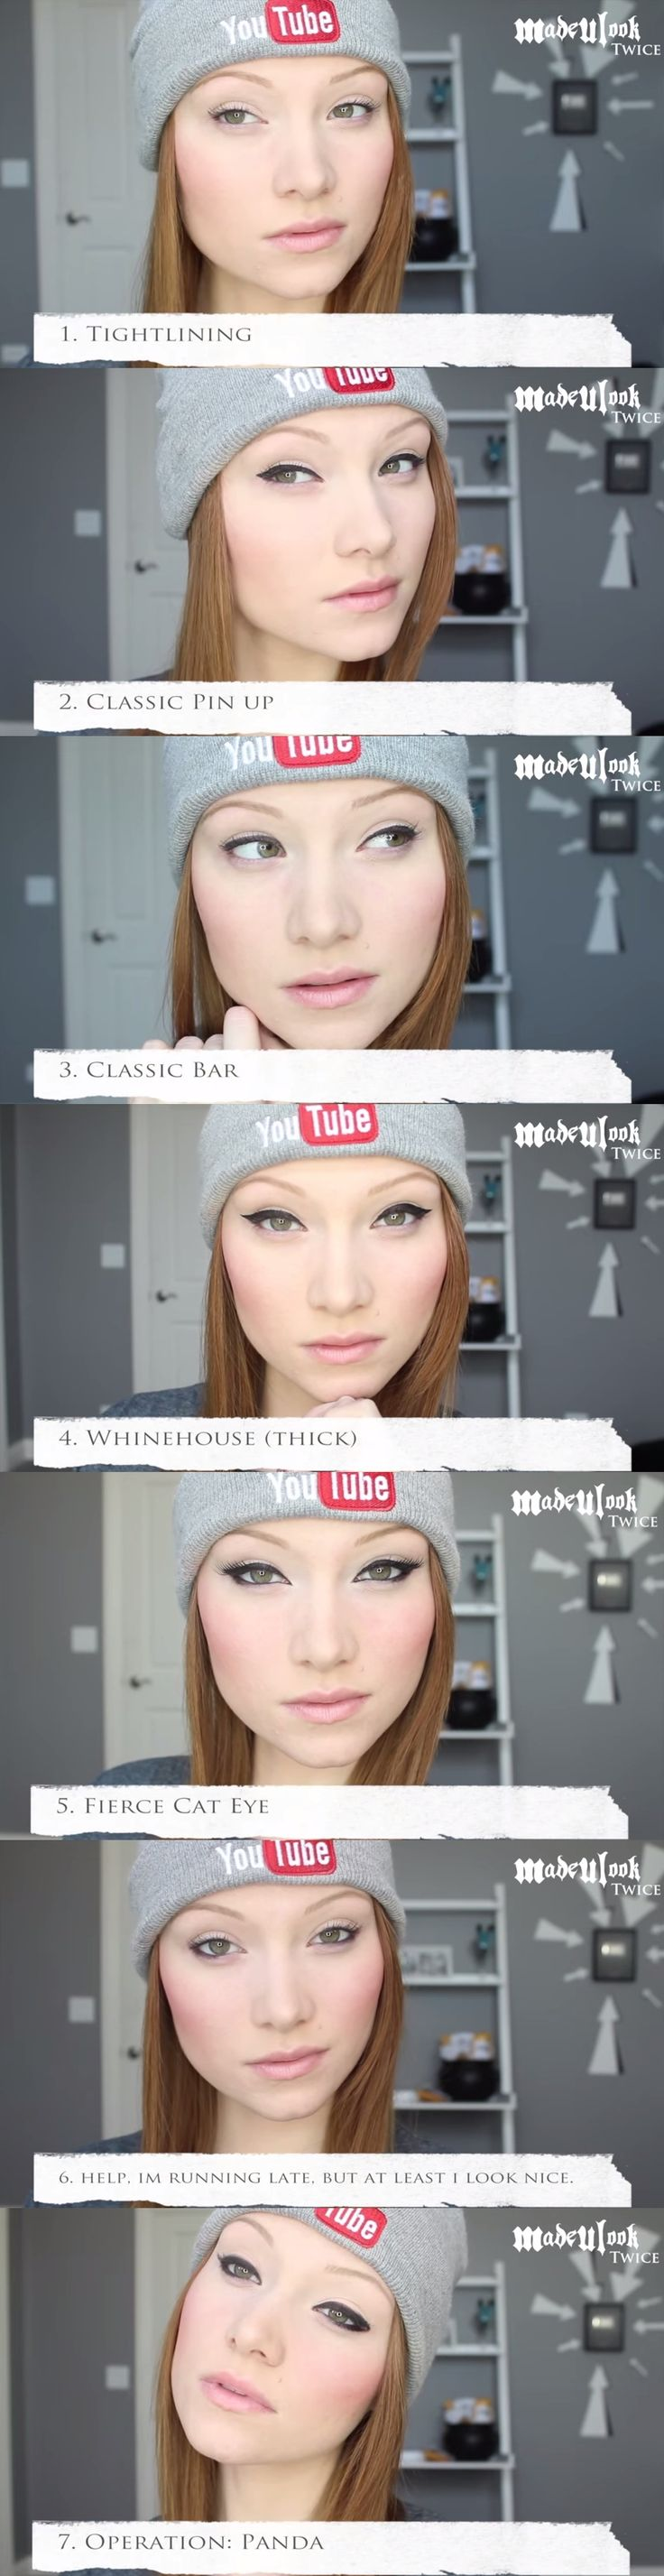 Seven Different Eyeliner Application Tutorial by MadeULook Twice [youtube]